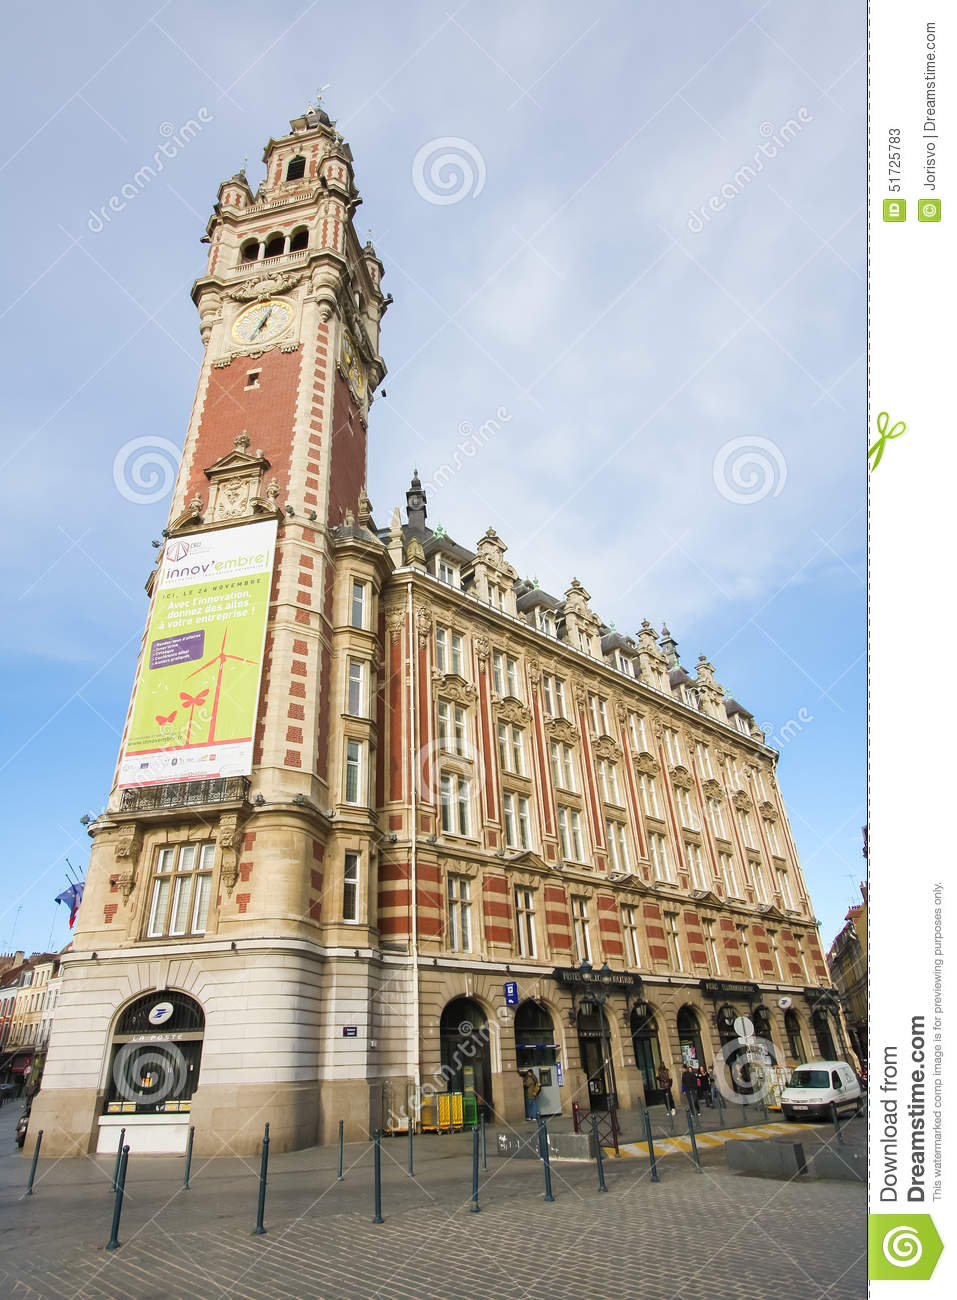 Chambre De Commerce France Chambre De Commerce In Lille France Editorial Stock Photo Image